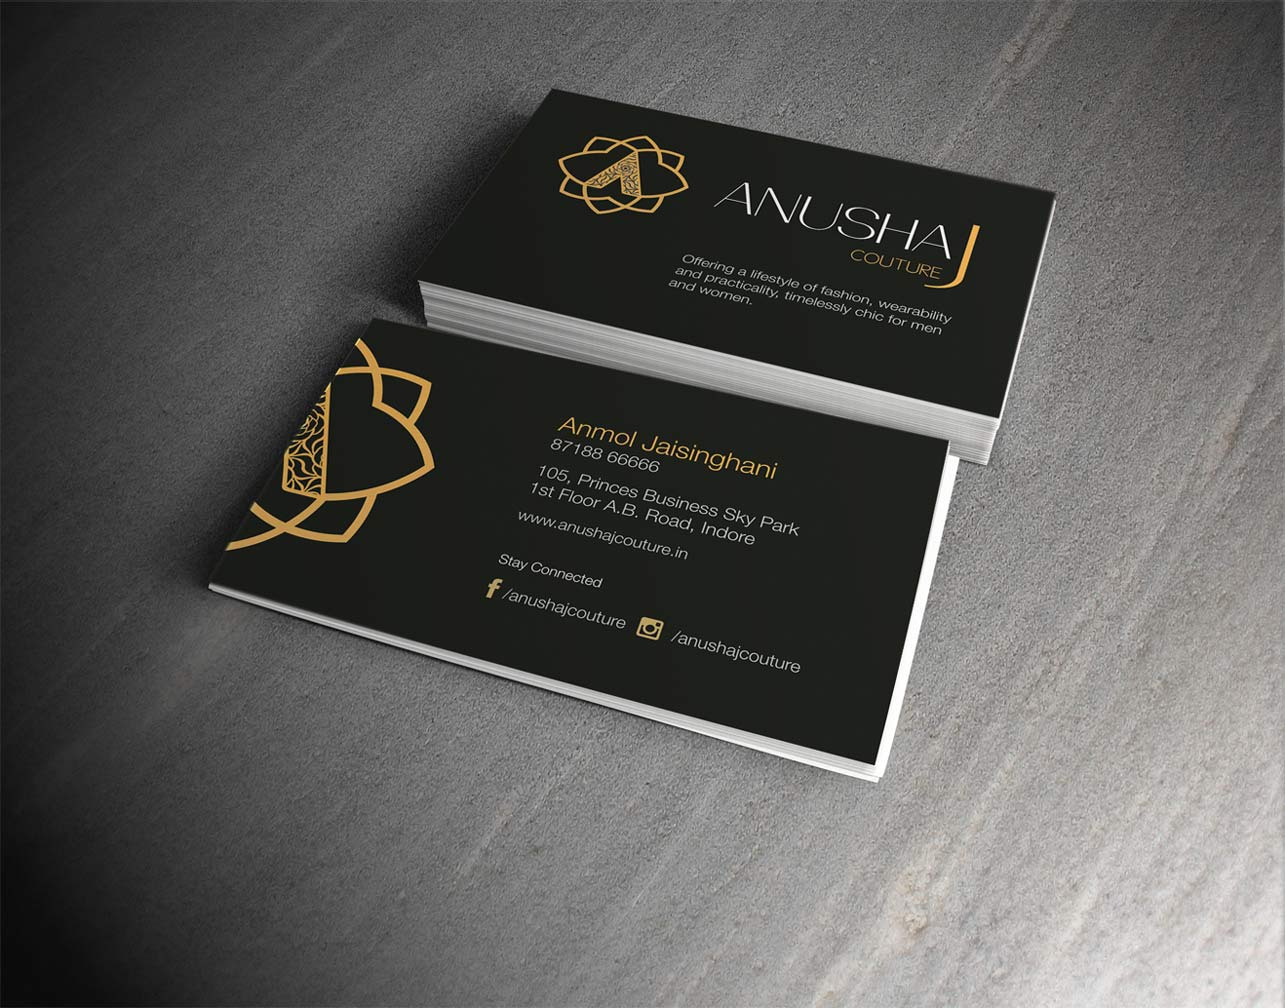 International standard business cards brochures stationery international standard business cards brochures stationery printing services in mumbai and indore 8prints colourmoves